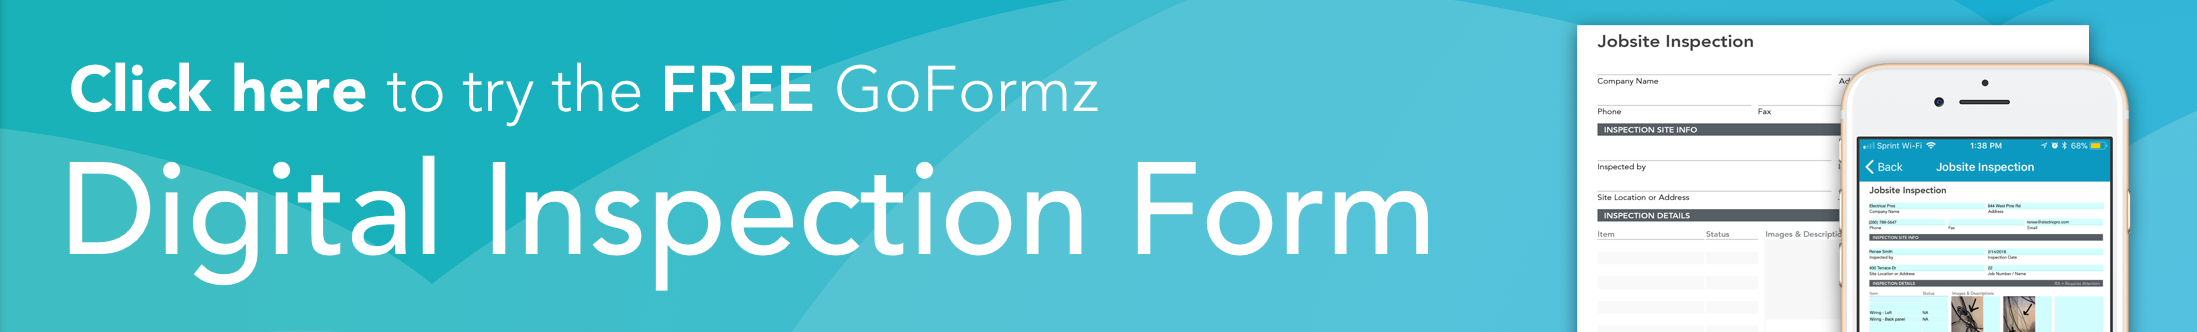 Click here to try the GoFormz digital inspection form